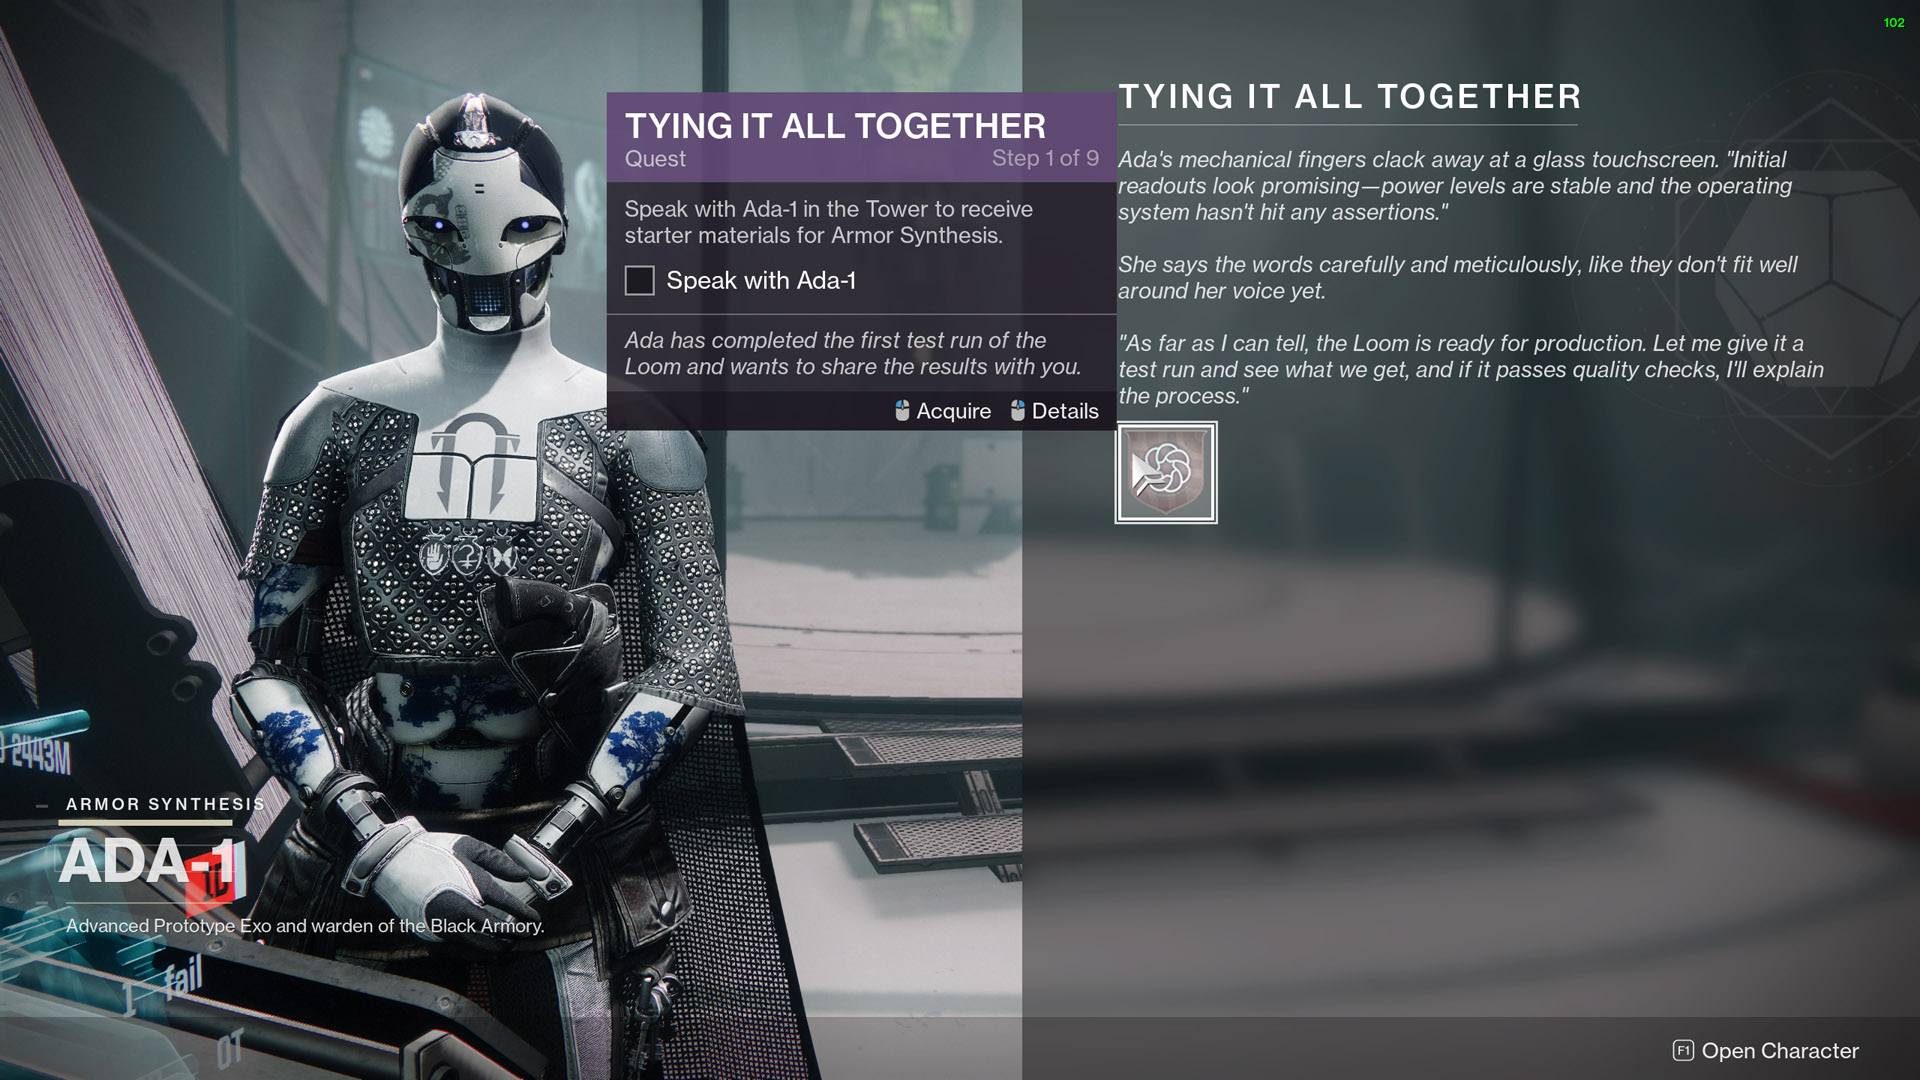 destiny 2 tying it all together quest